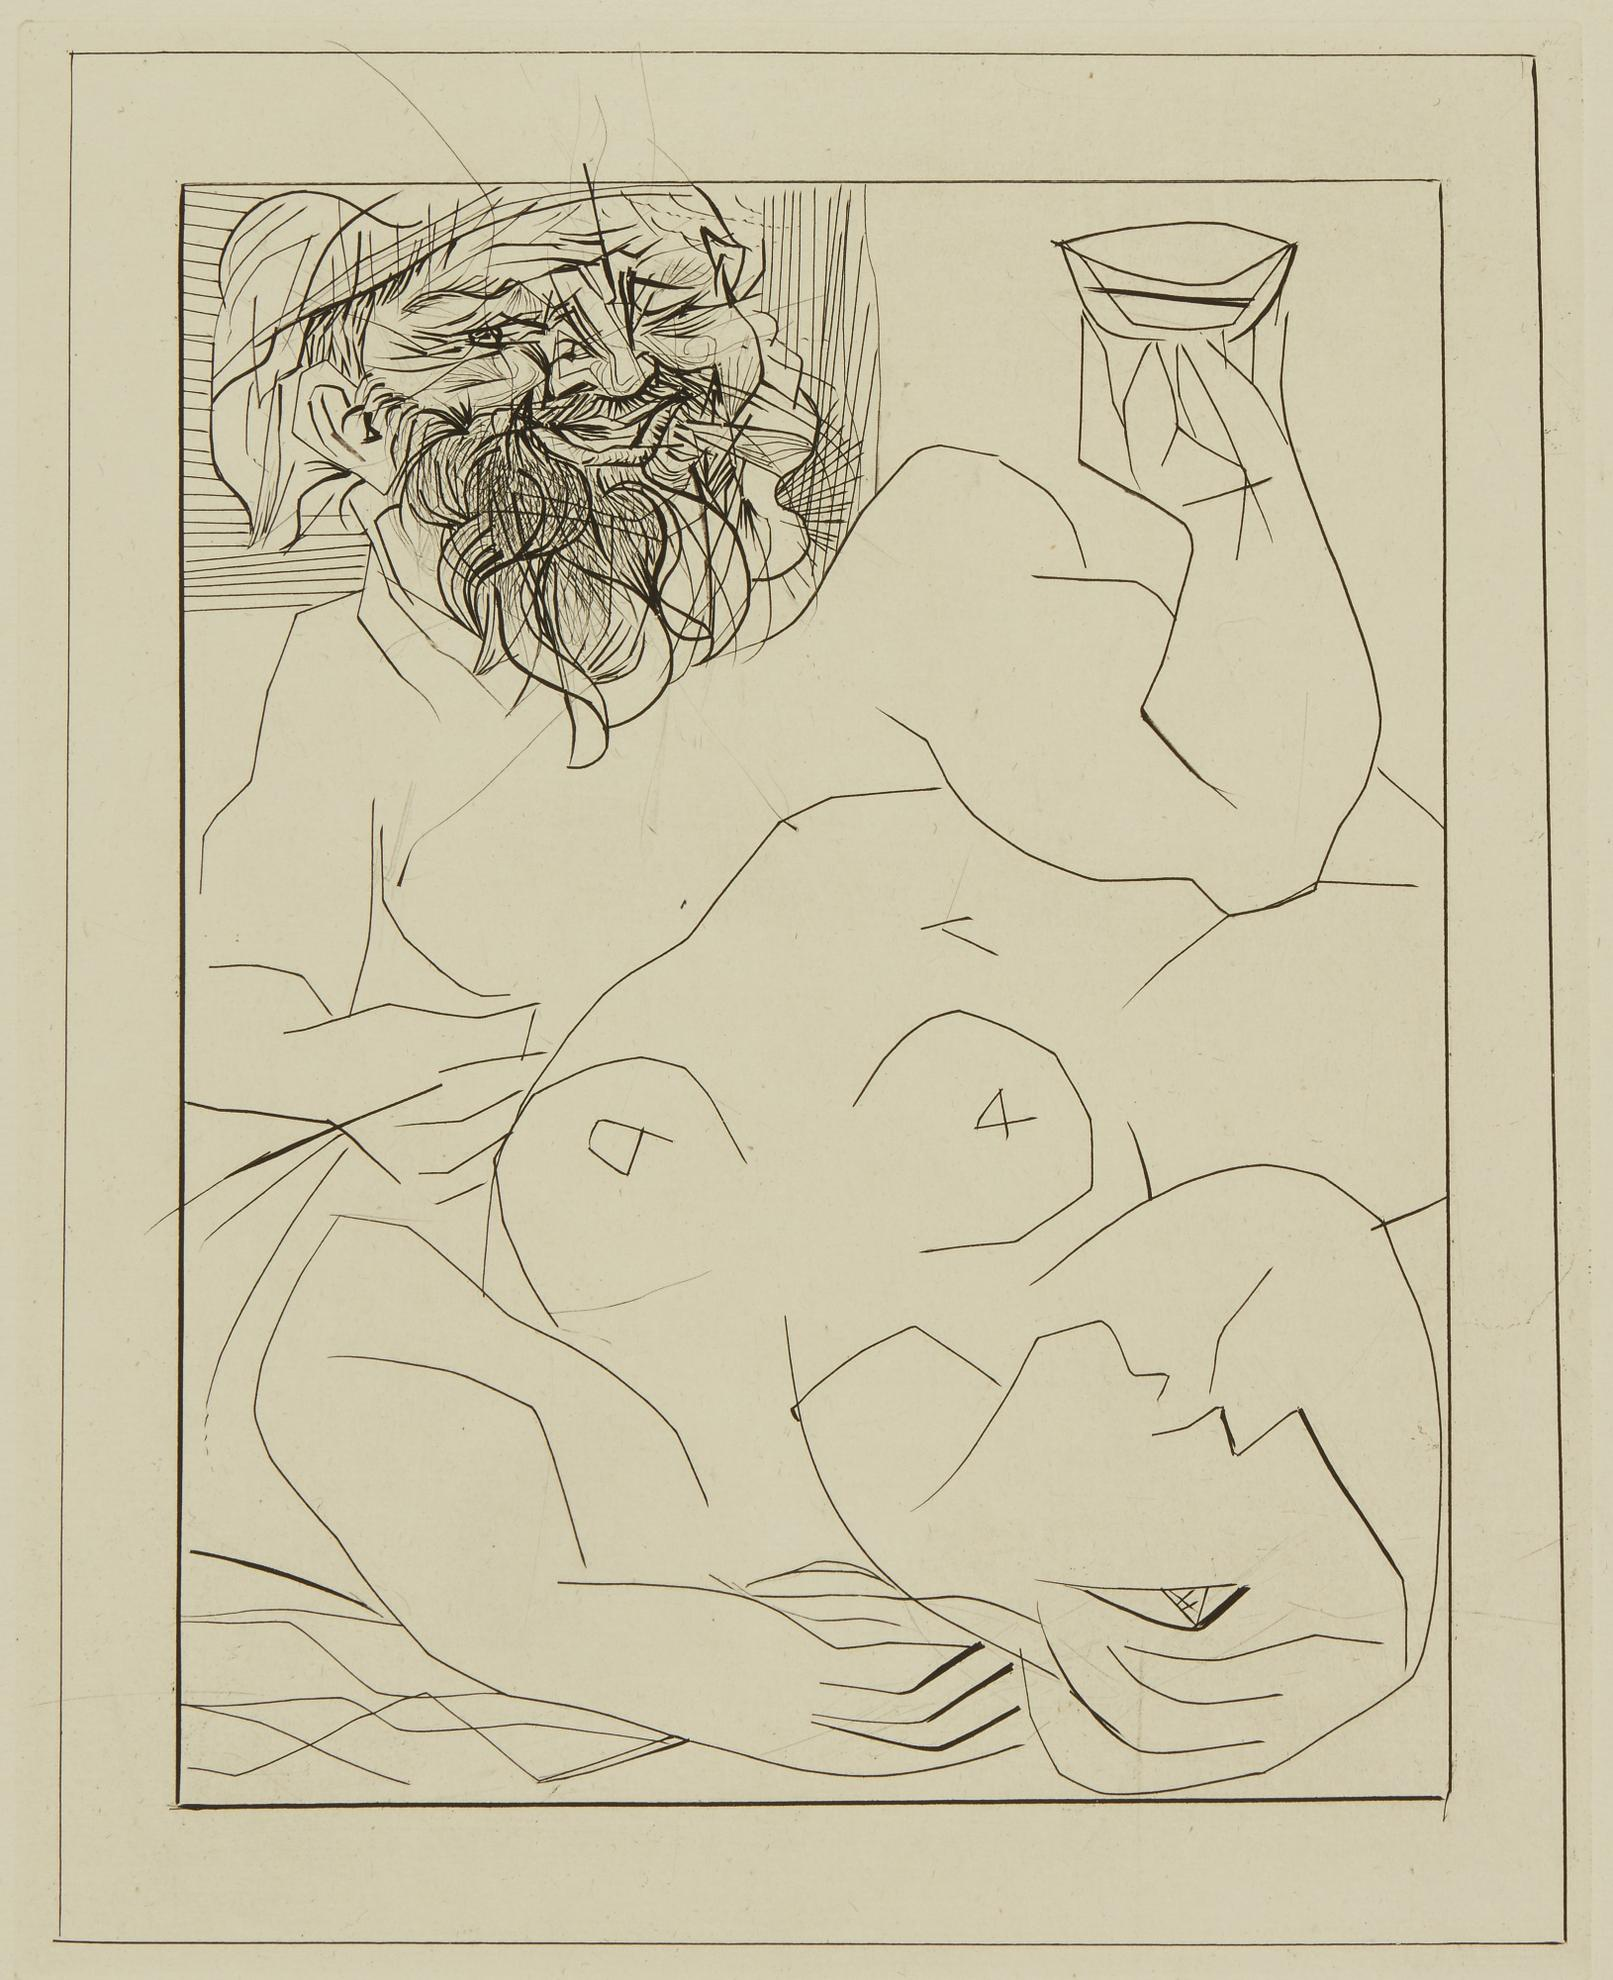 Pablo Picasso-Bacchus Et Marie-Therese (En Ariane?) (B. 284; Ba. 432)-1934